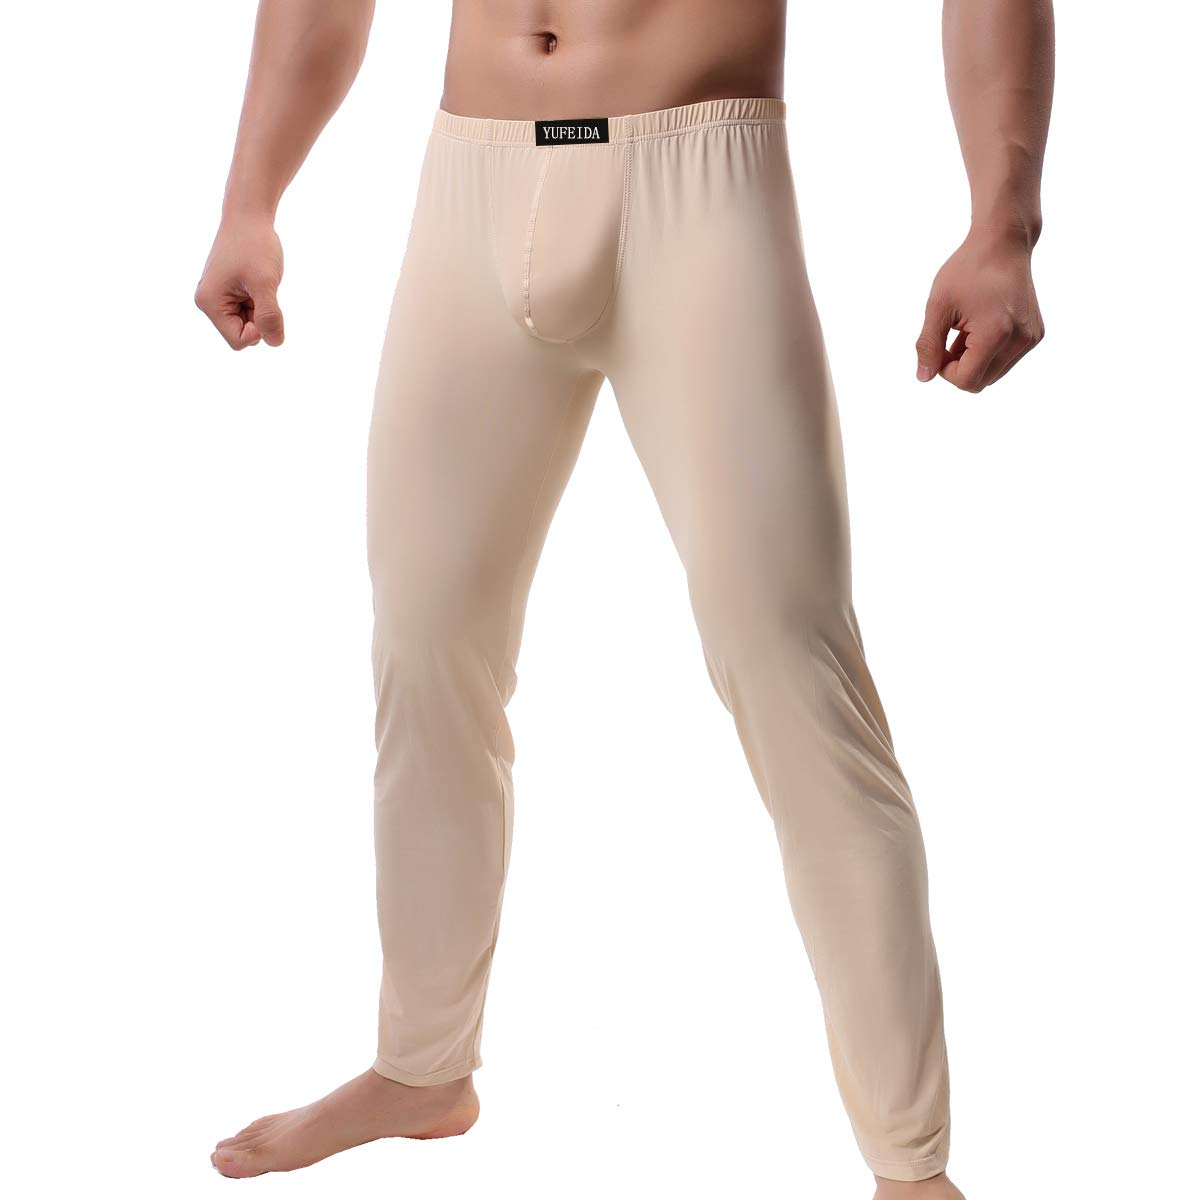 Men's Compression Half Tights Leggings Sheer Swimwear Shorts Trunks Pant (L, Thicker Beige) by YUFEIDA